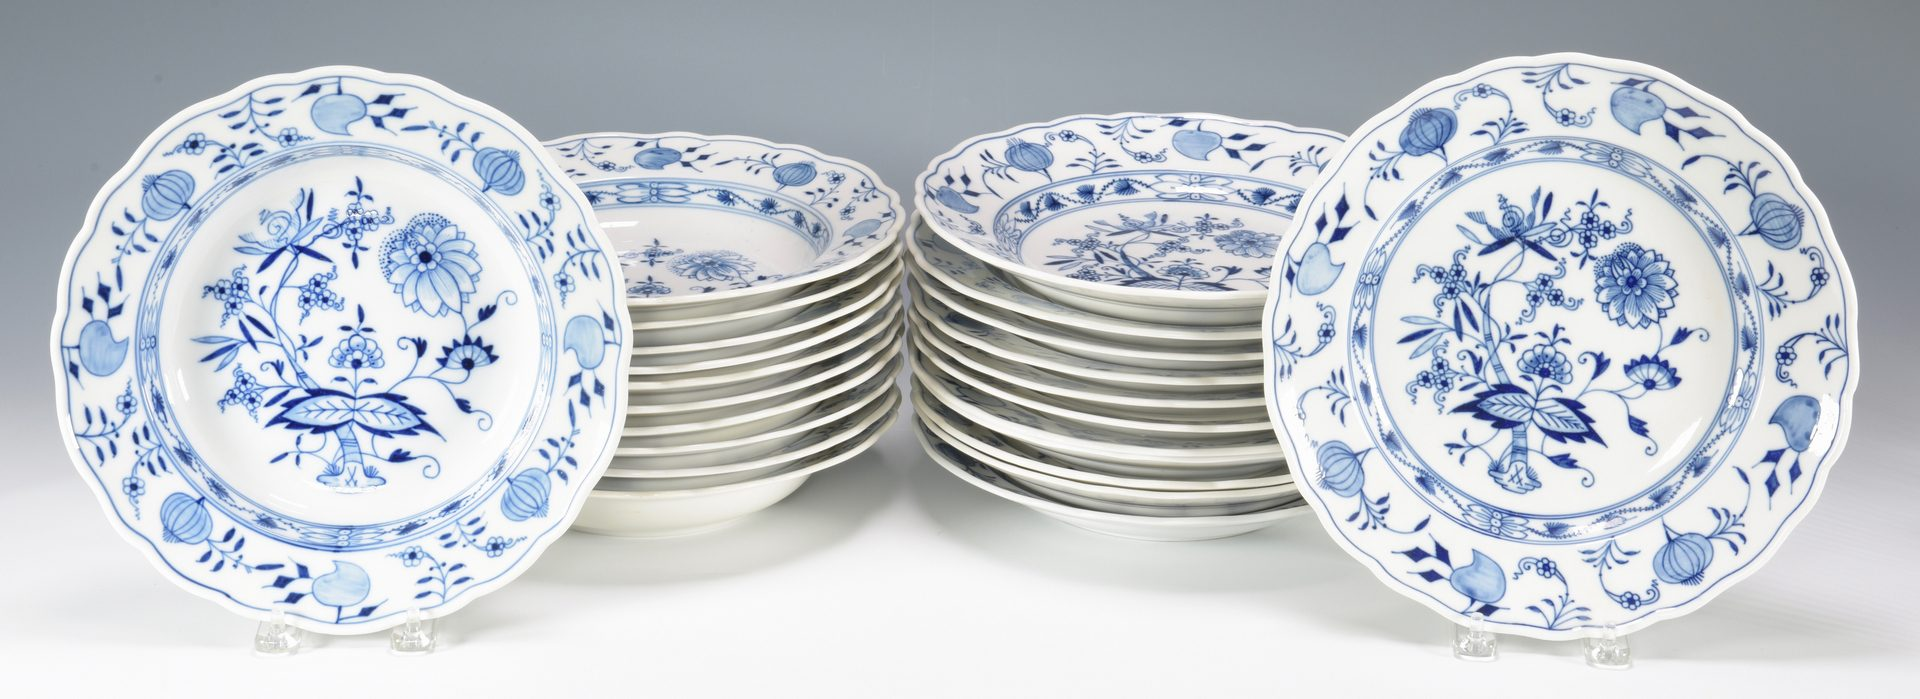 Lot 686: Meissen Blue Onion Porcelain, 93 pcs.